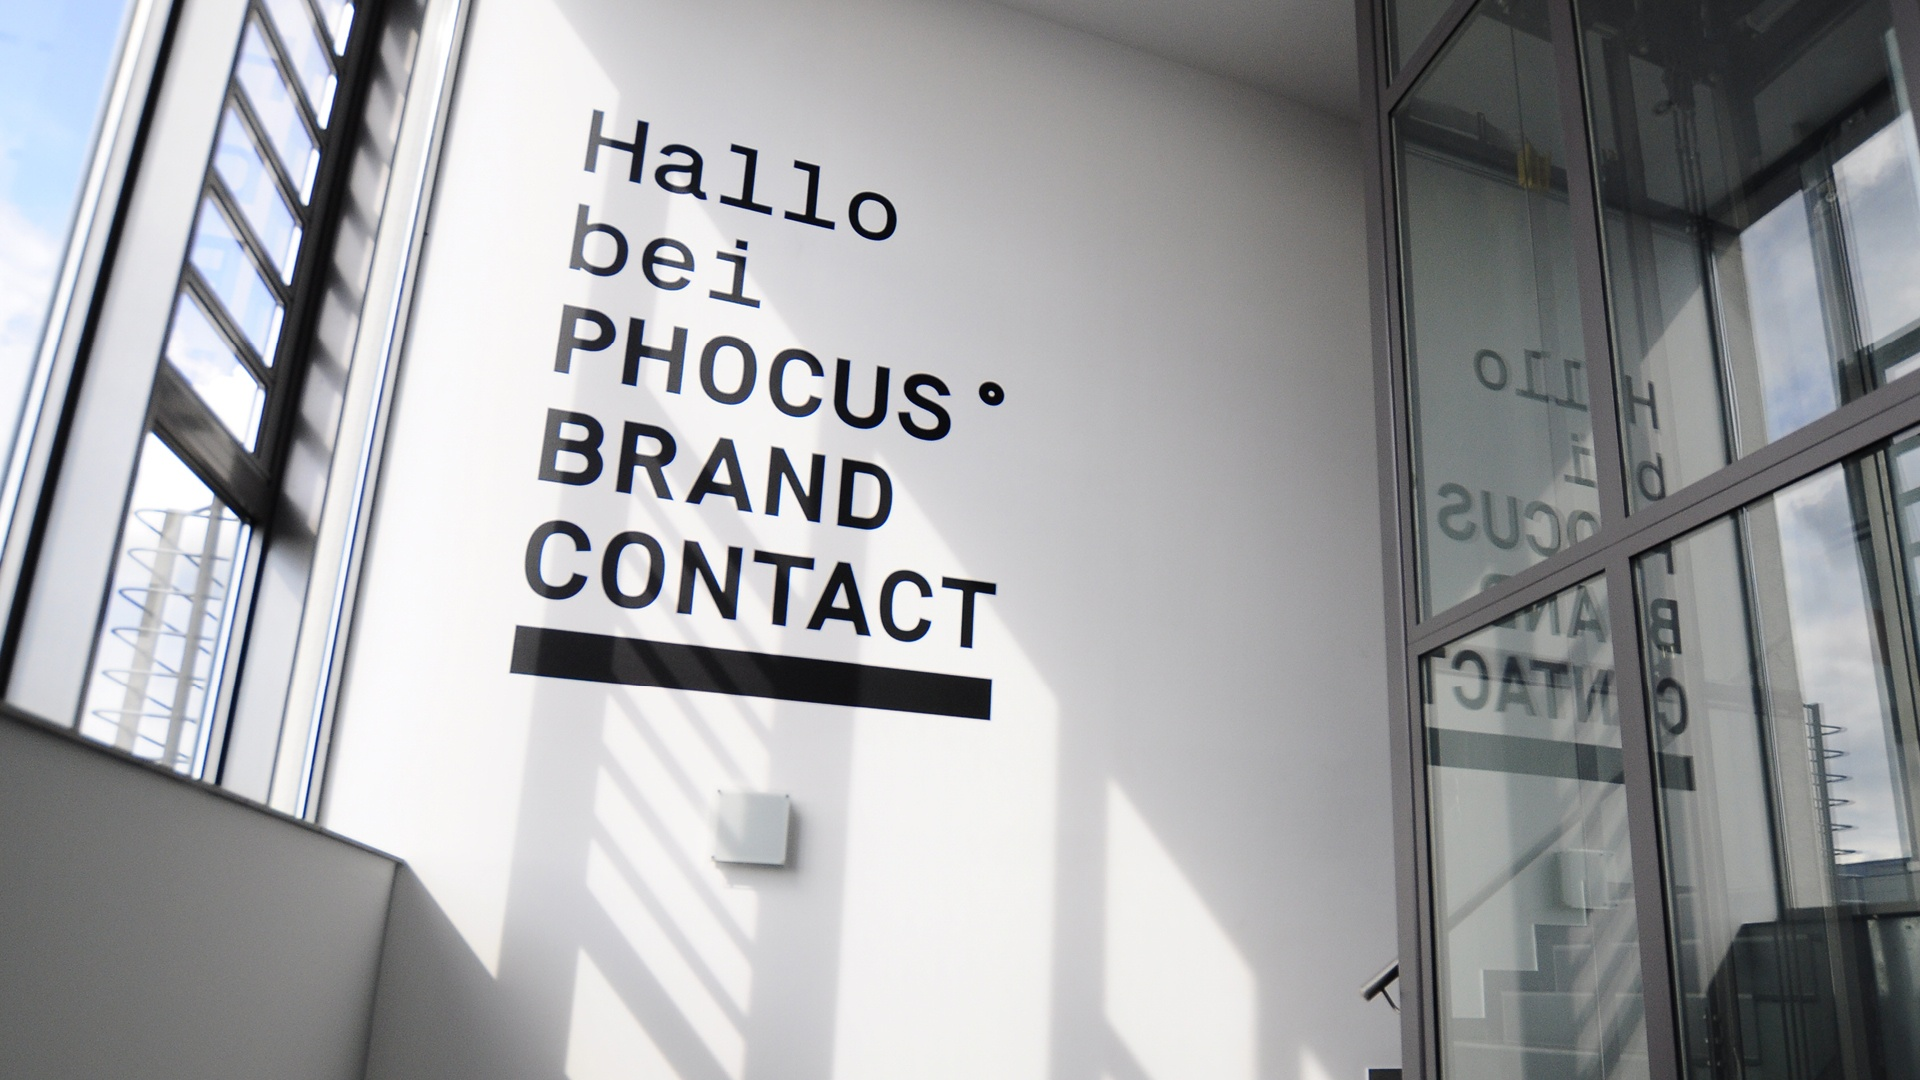 PHOCUS BRAND CONTACT in Nürnberg